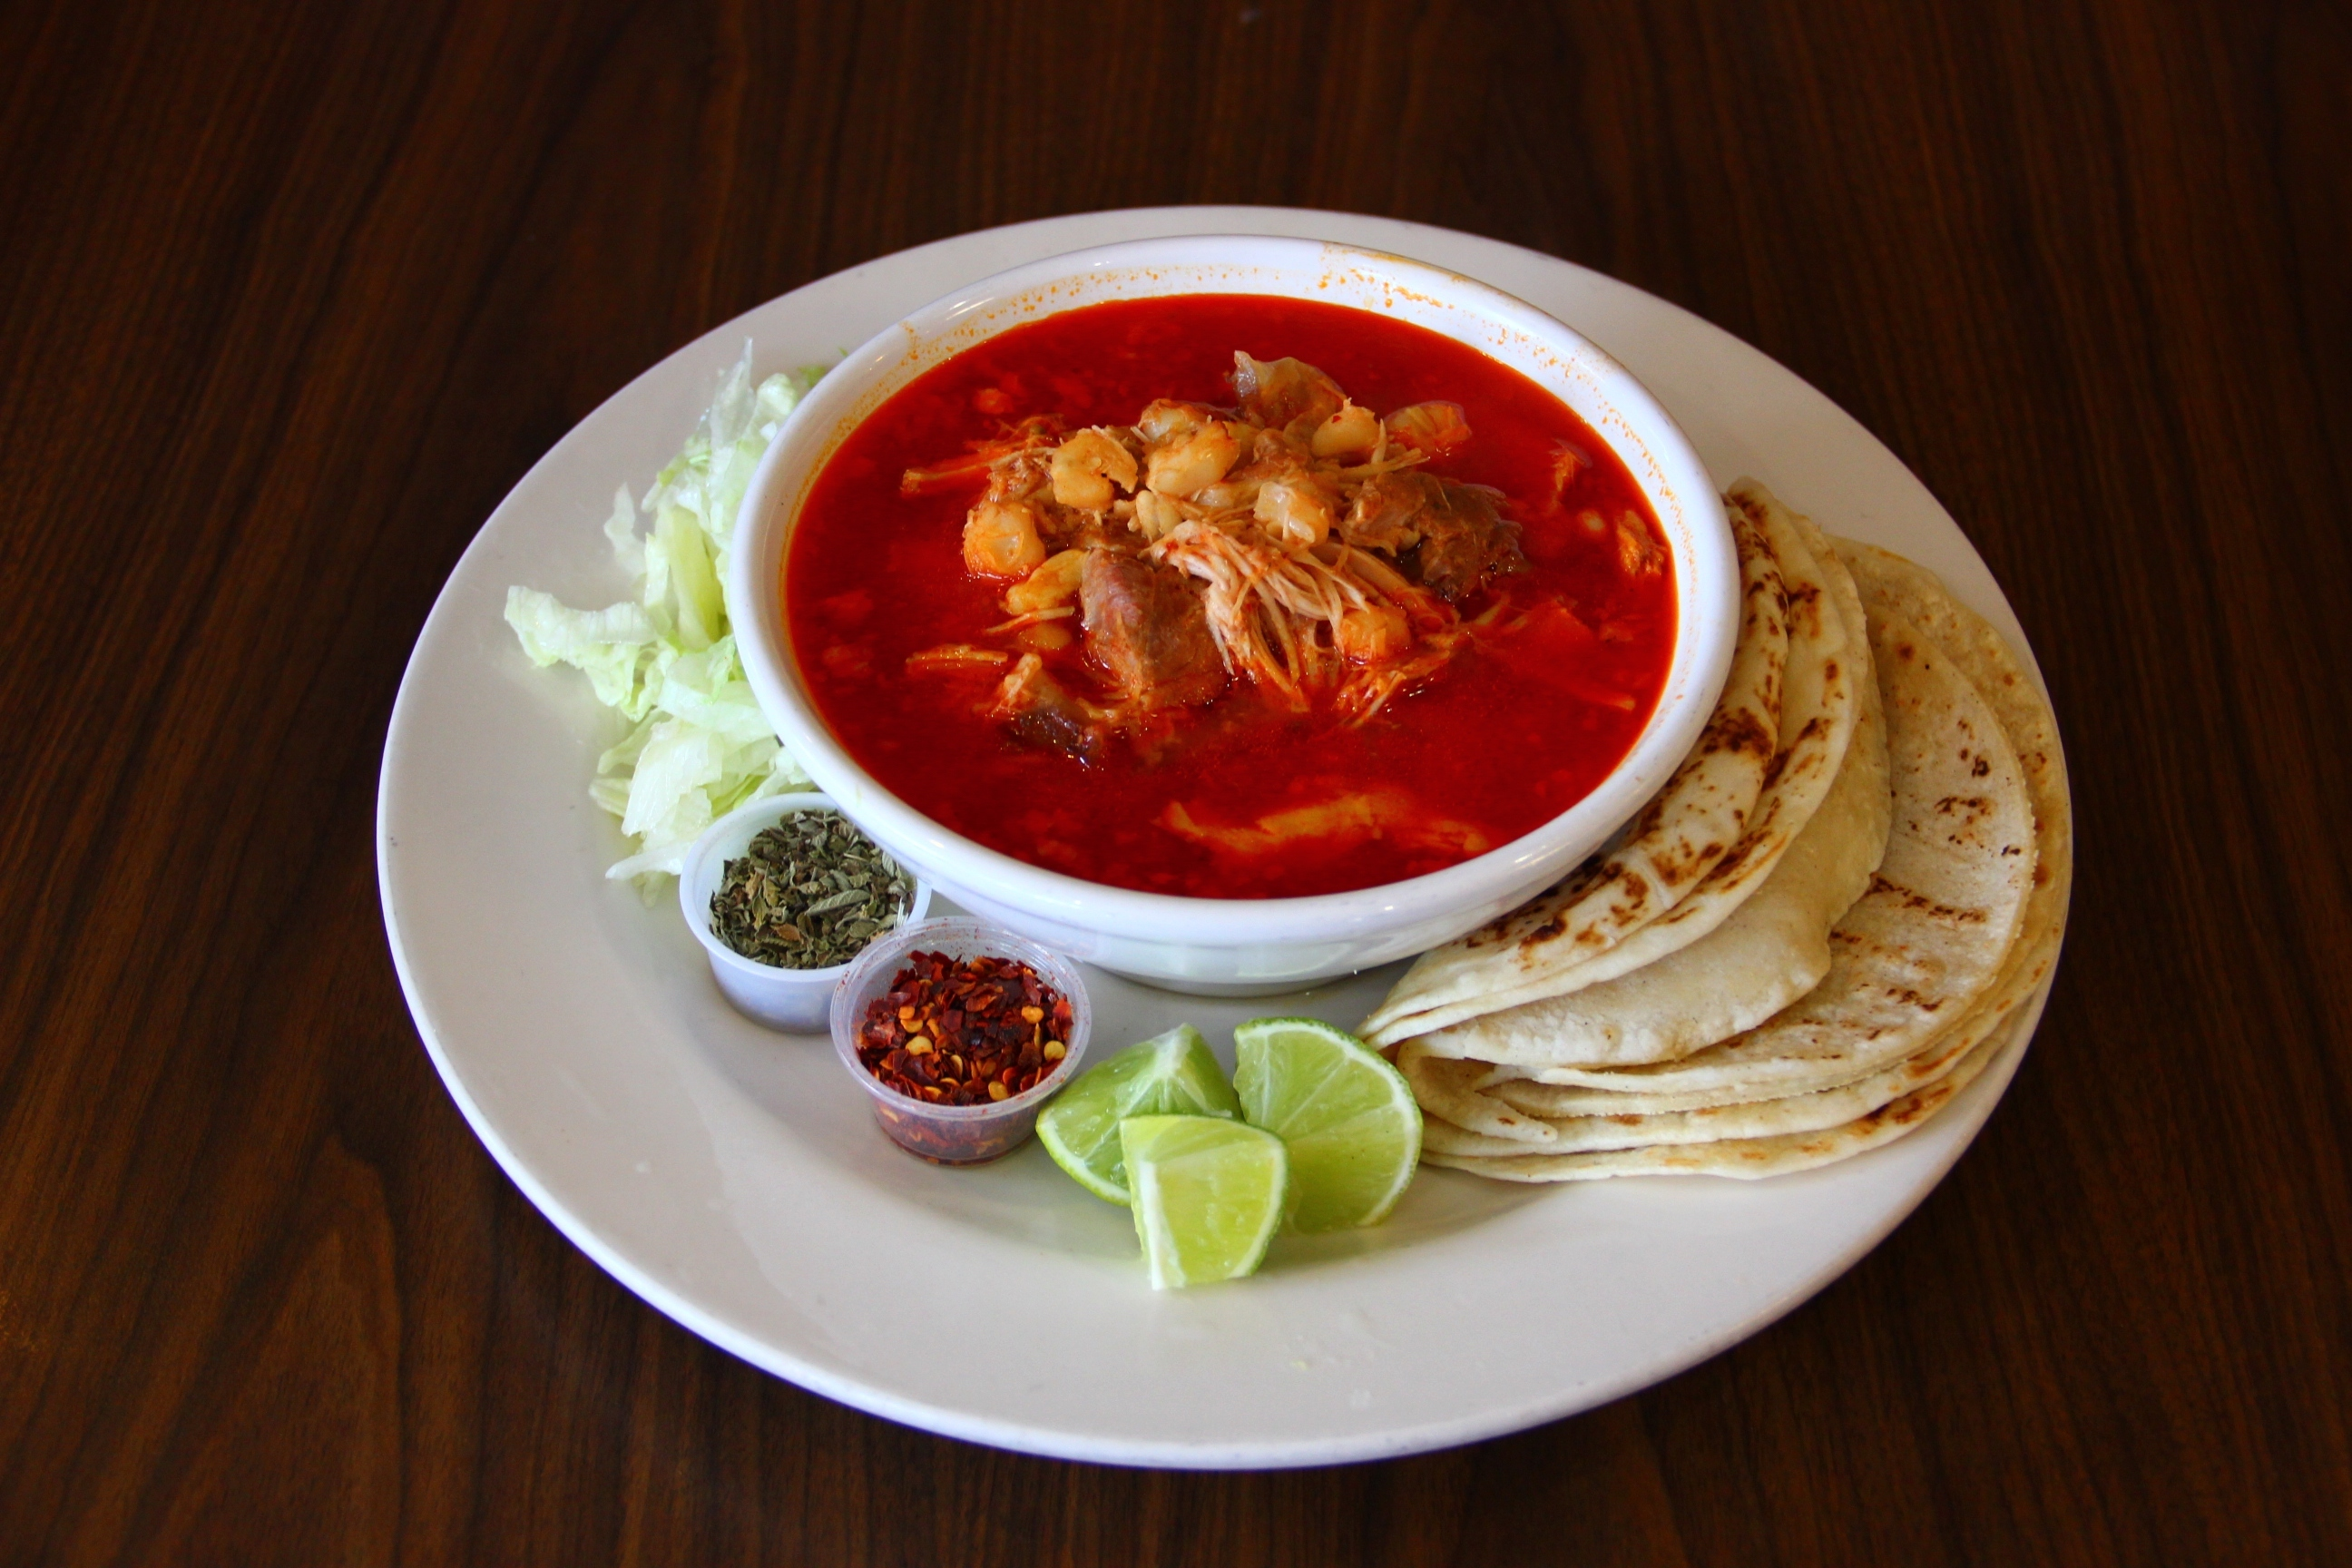 A view of a bowl of pozole, with tortillas, lime, and sauces on the side.